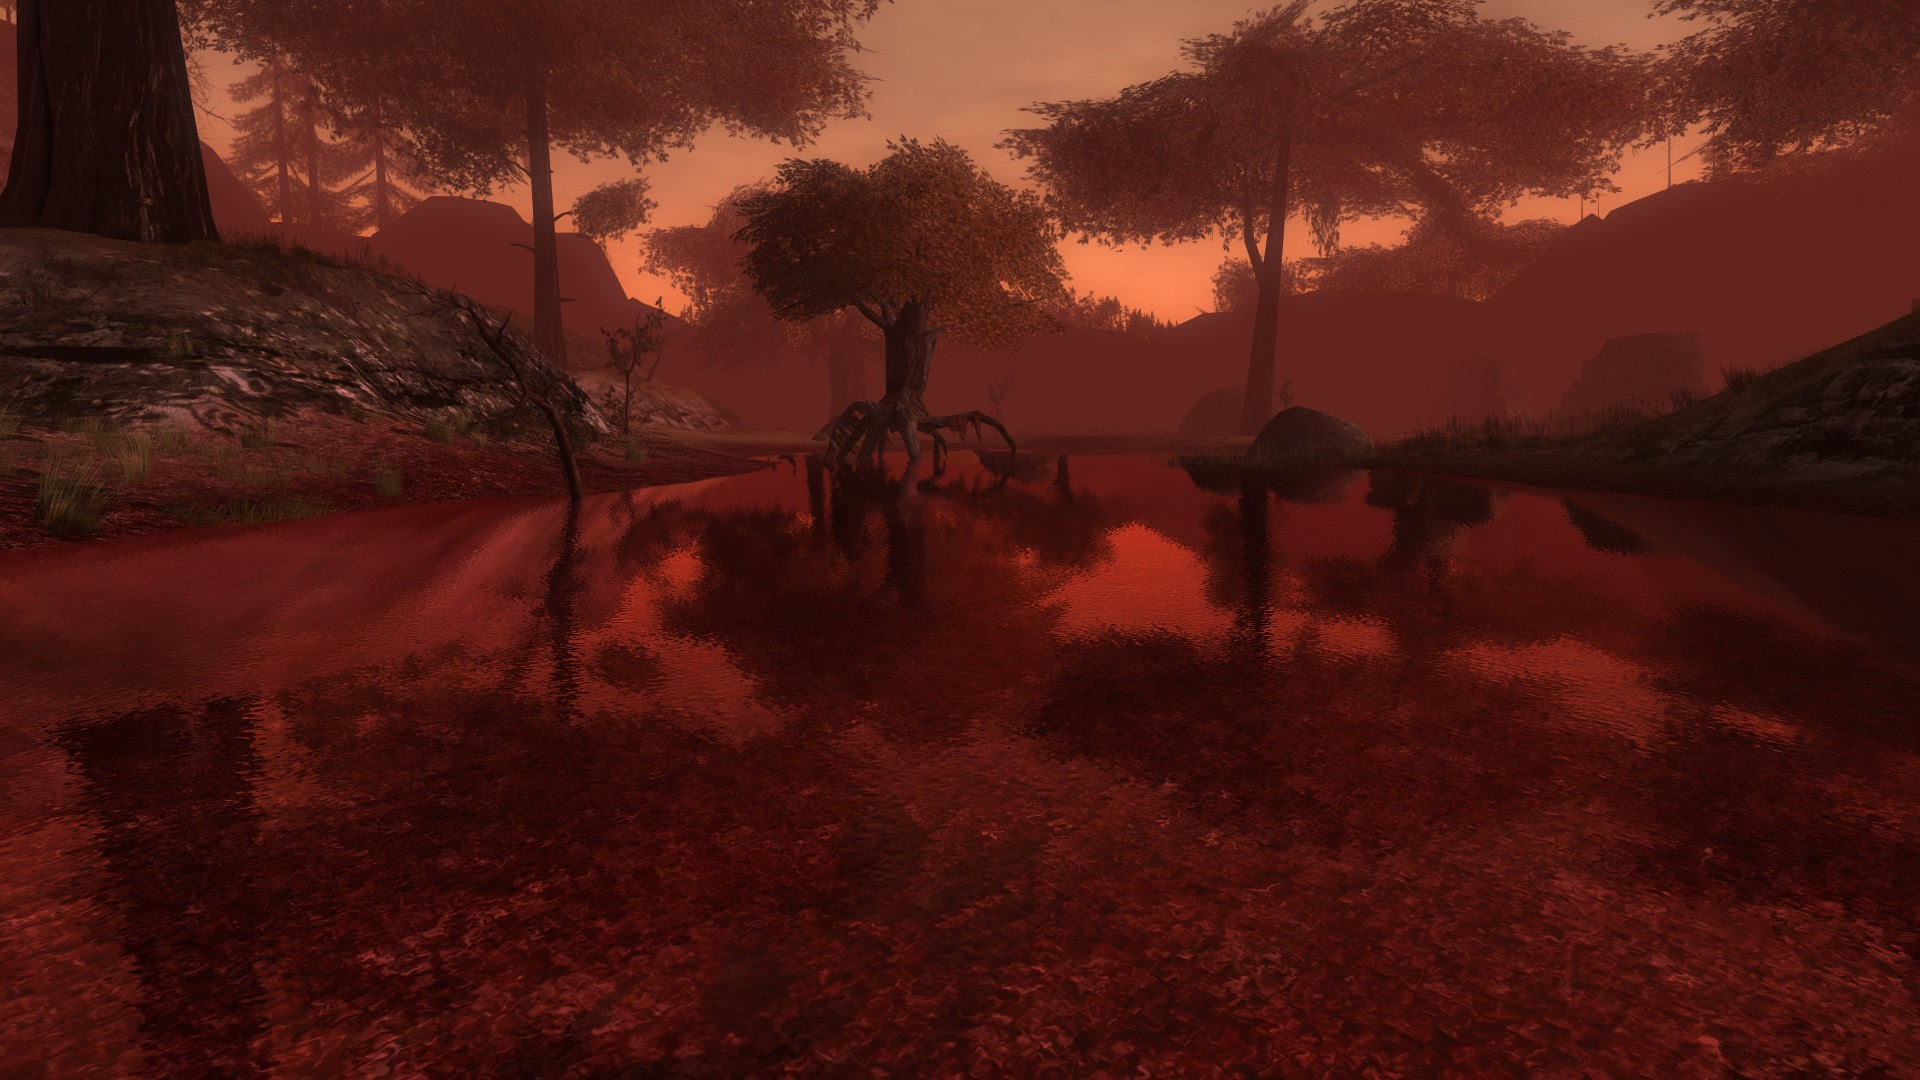 Lord of the Rings Online - When the trees start to walk, grab a flamethrower and some axes.